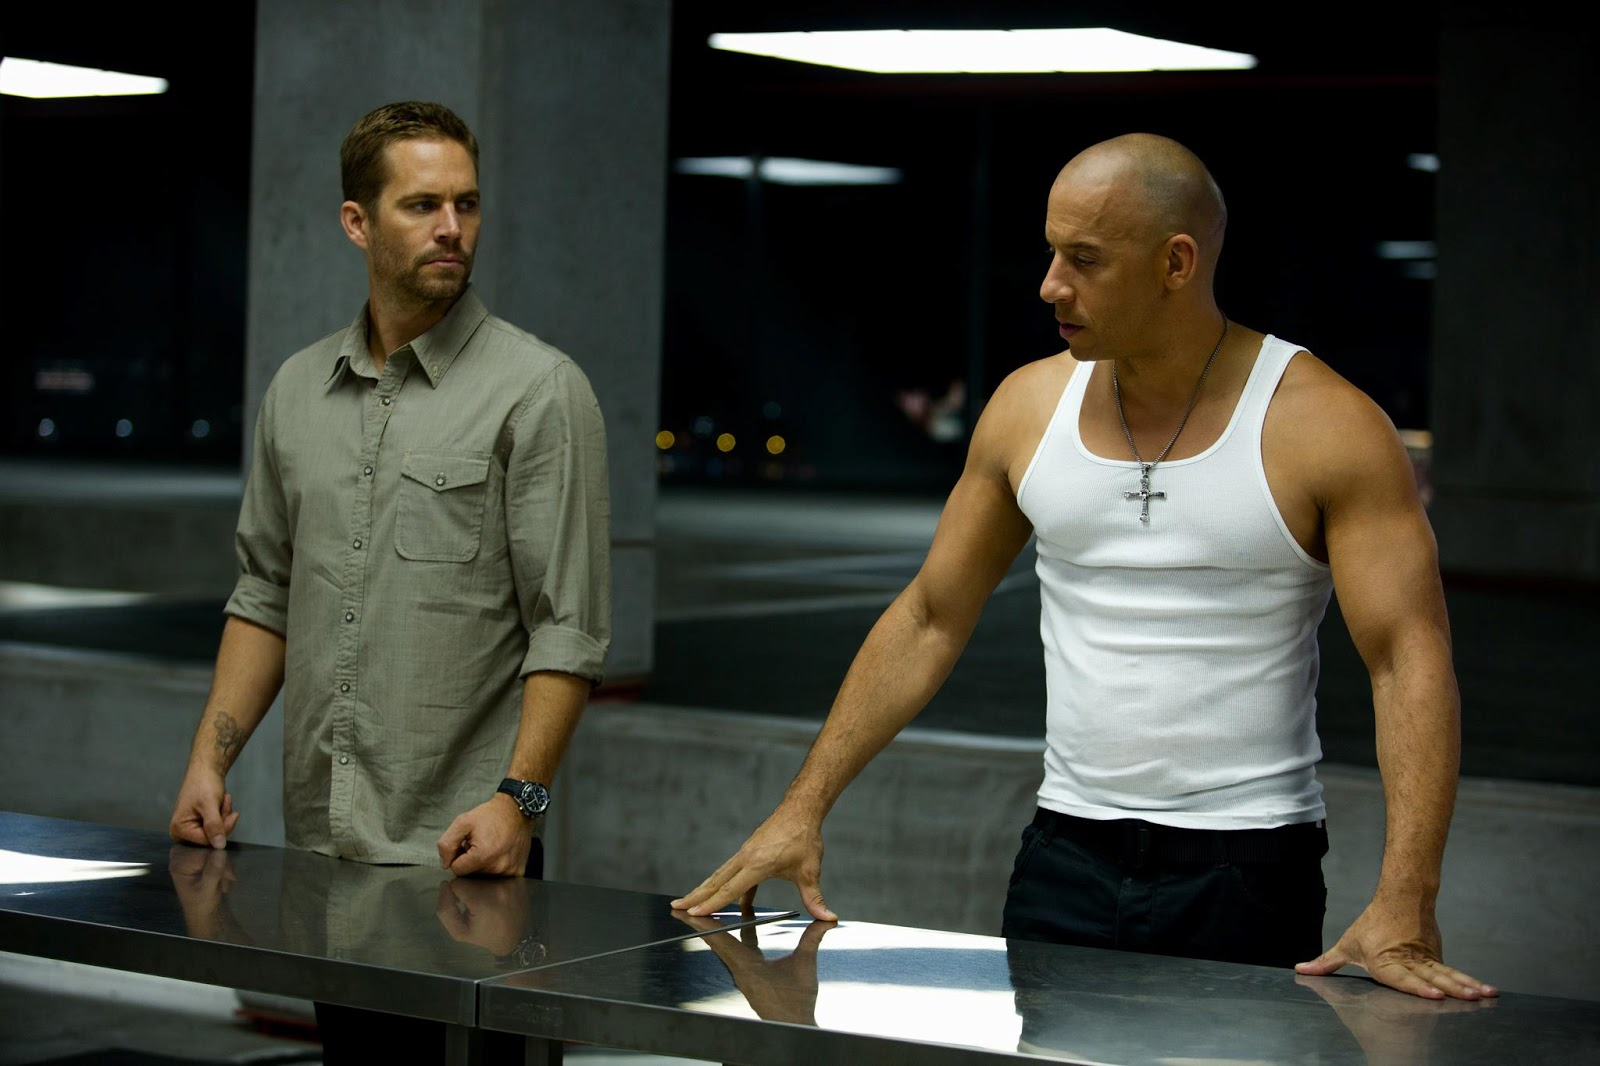 Fast & Furiou6: The Search For Letty